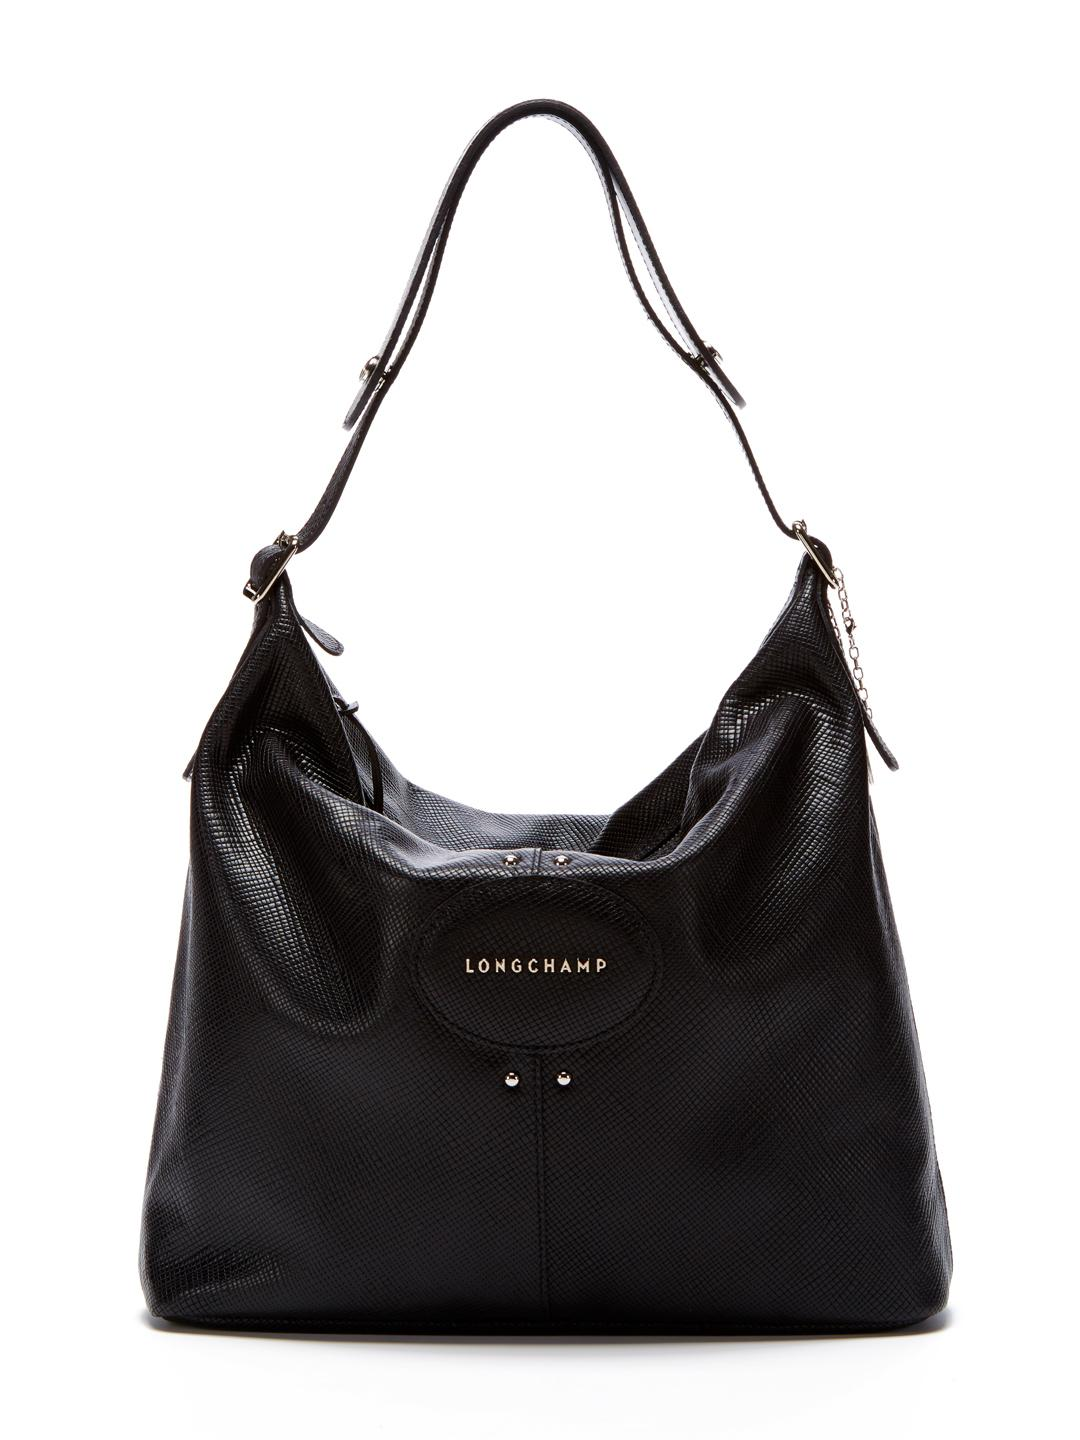 4847b44819d94 Lyst - Longchamp Quadri Leather Hobo Bag in Black